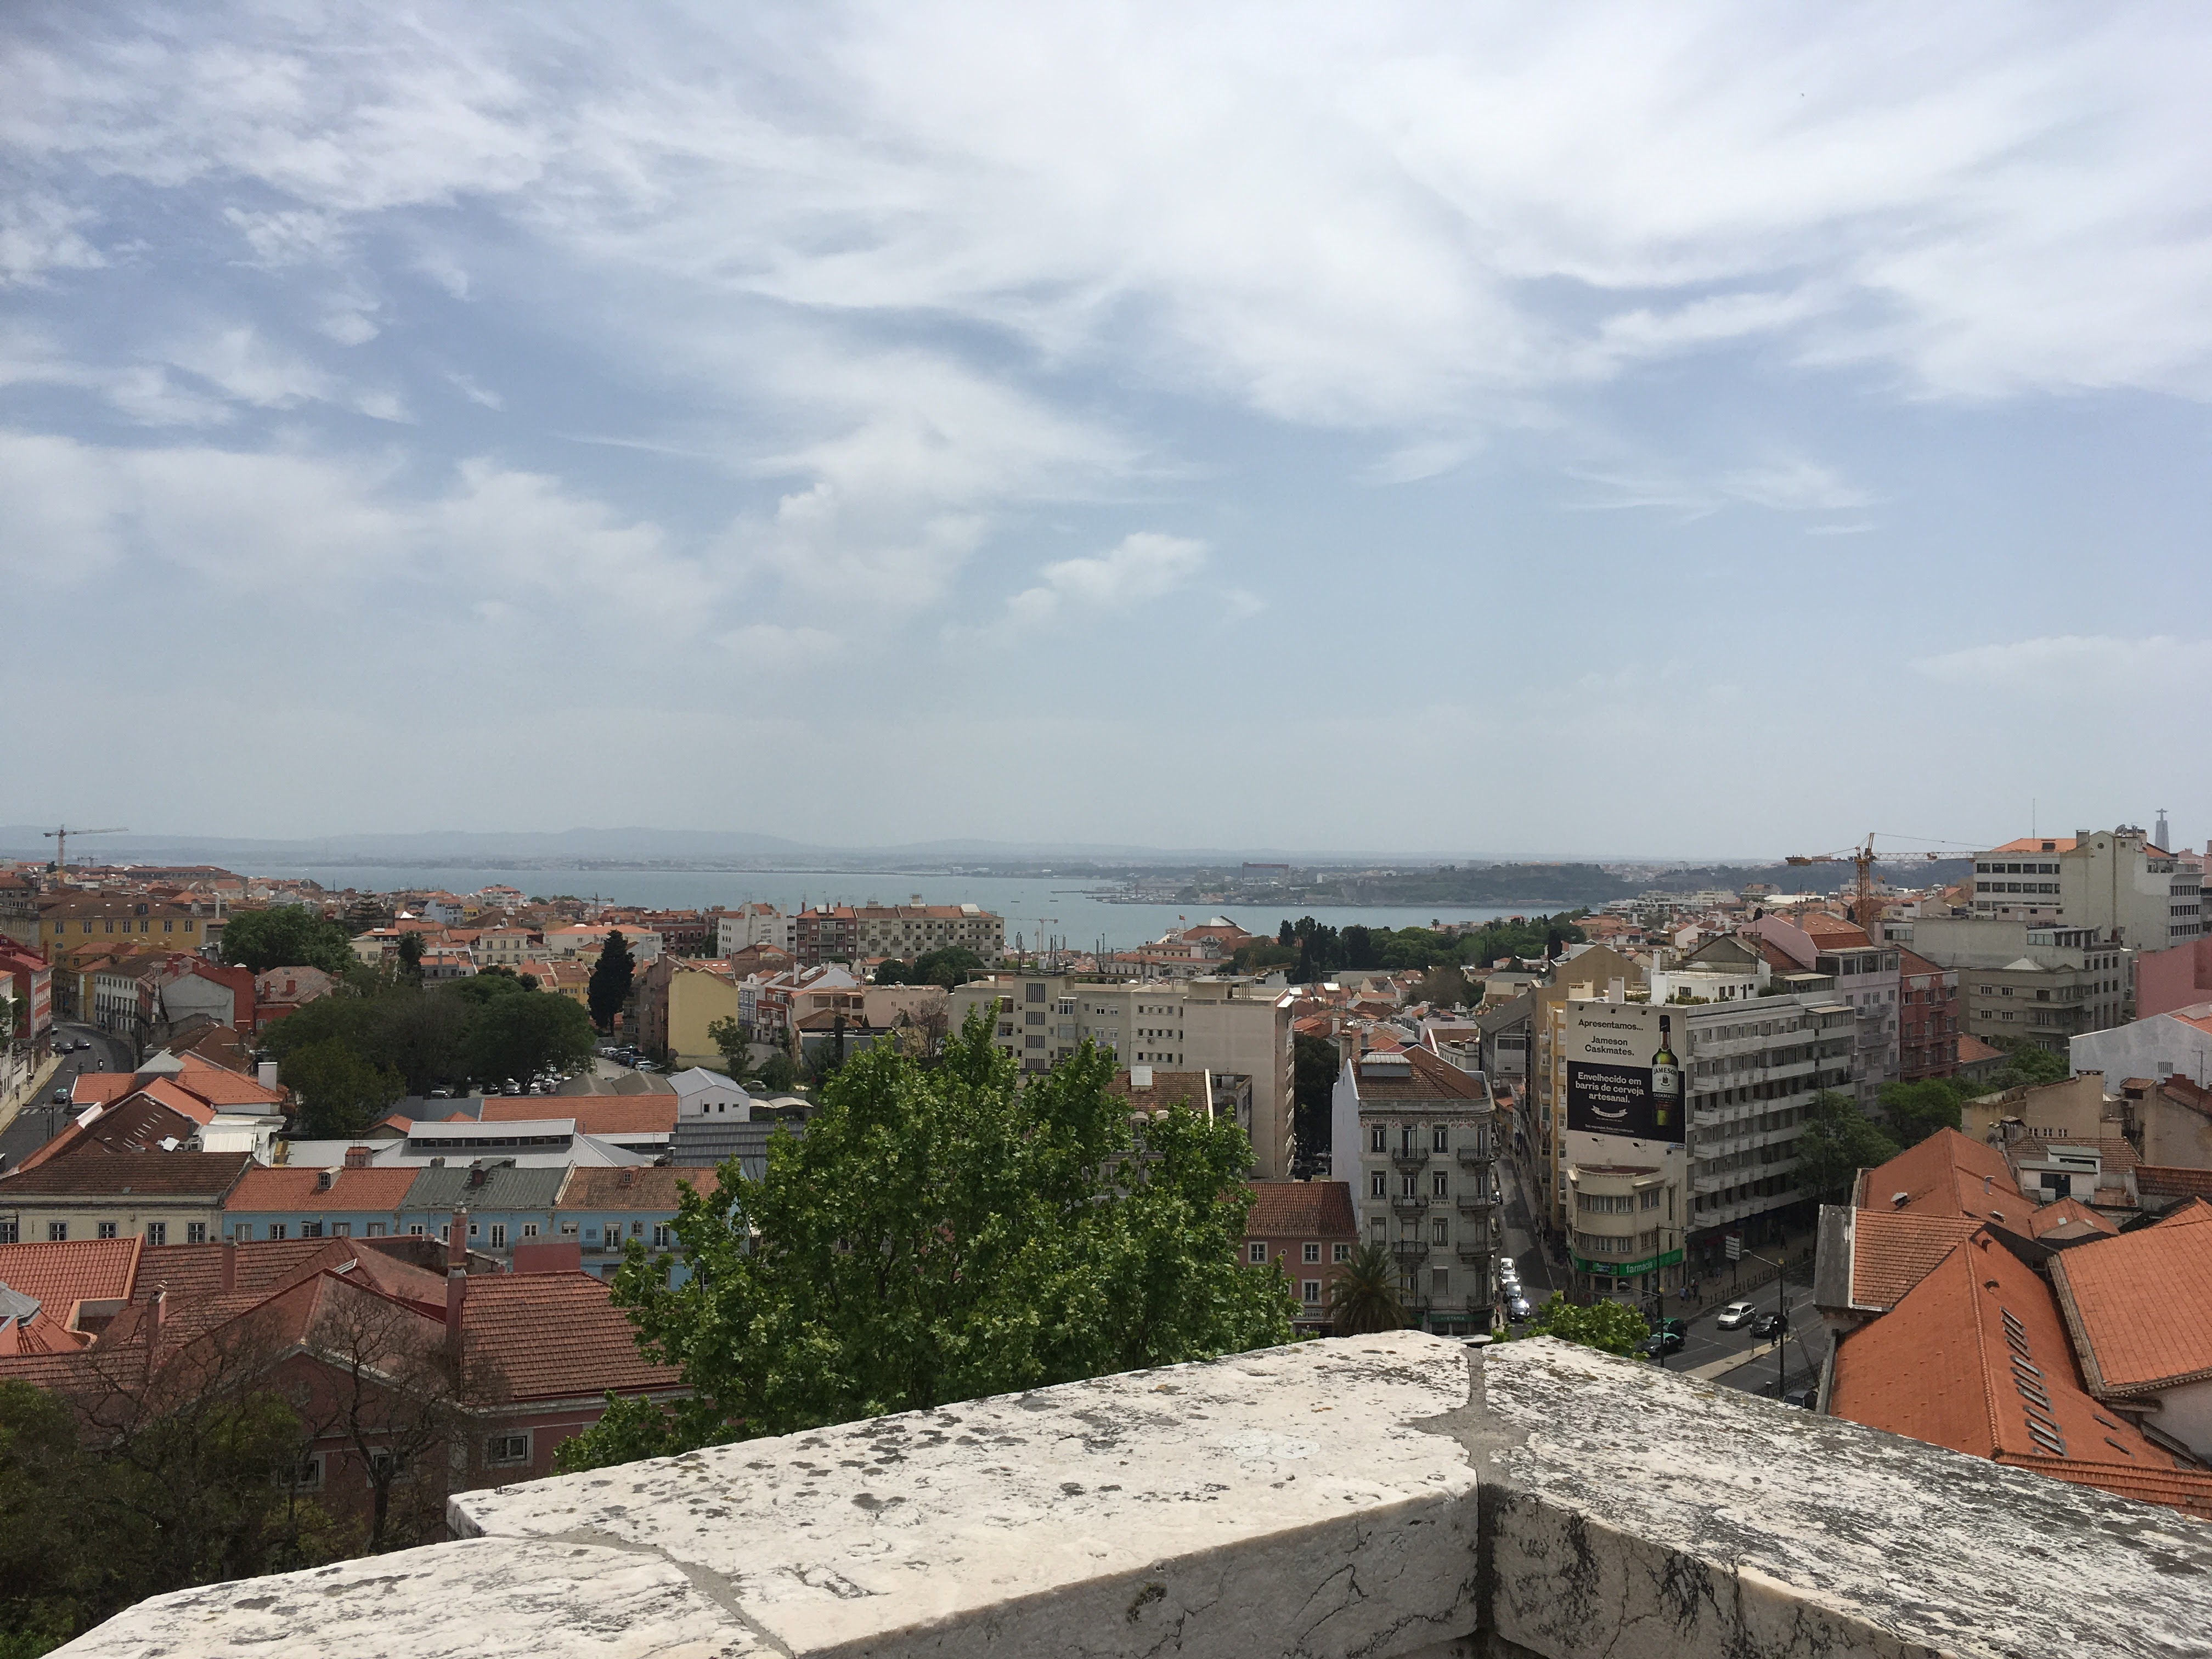 On top of the Aqueduct in Lisbon Portugal